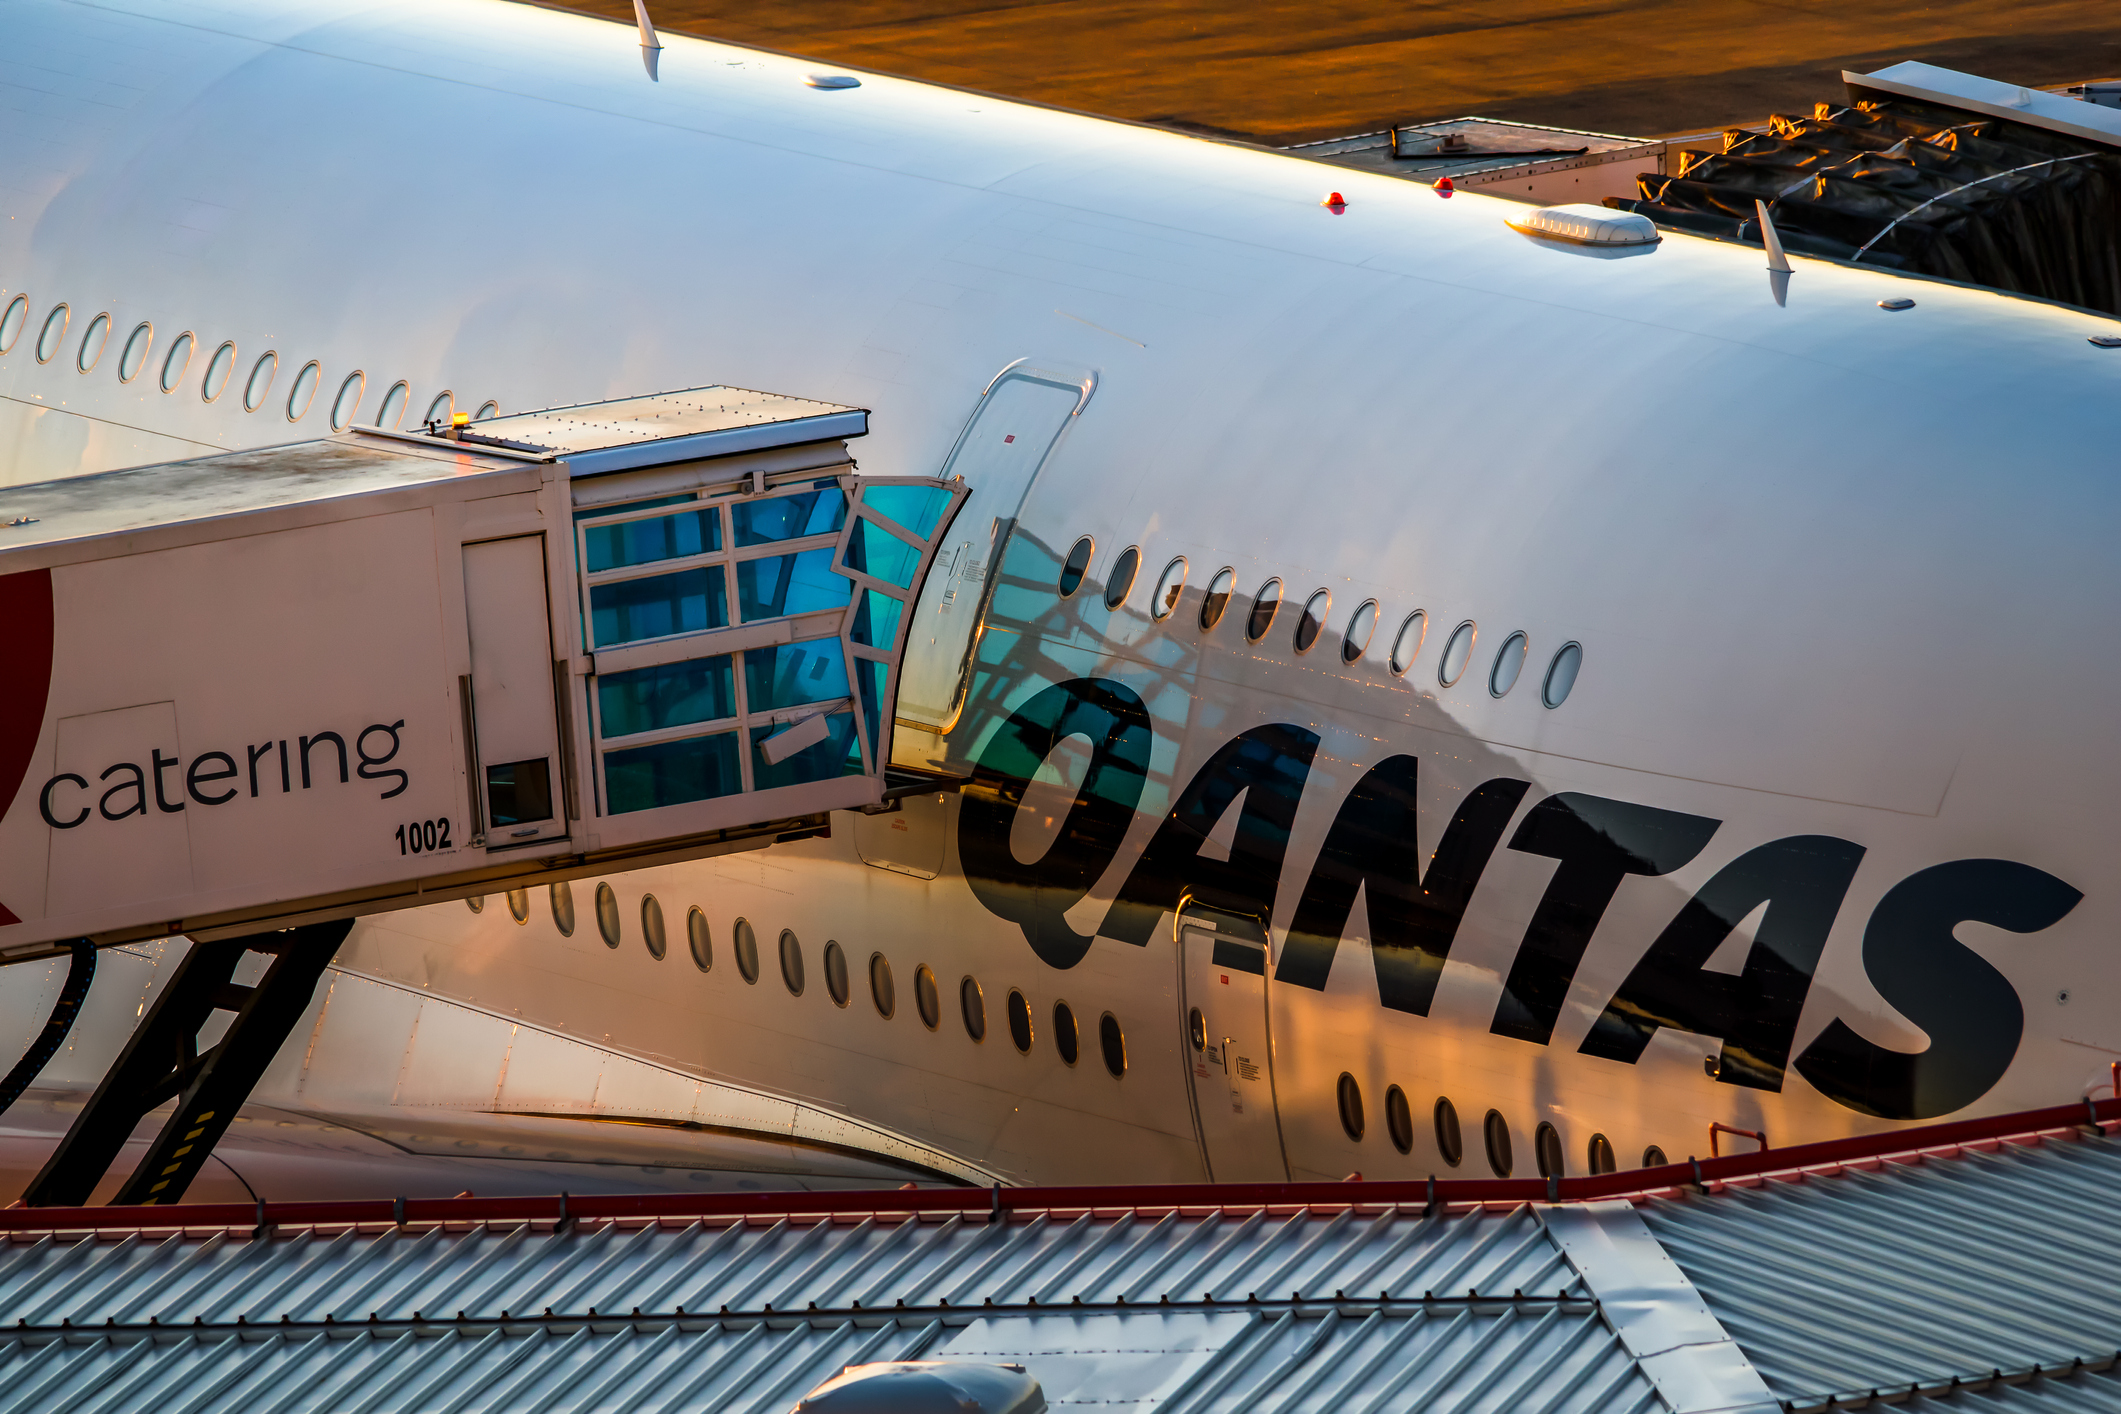 Qantas Launches Major Sustainability Initiative